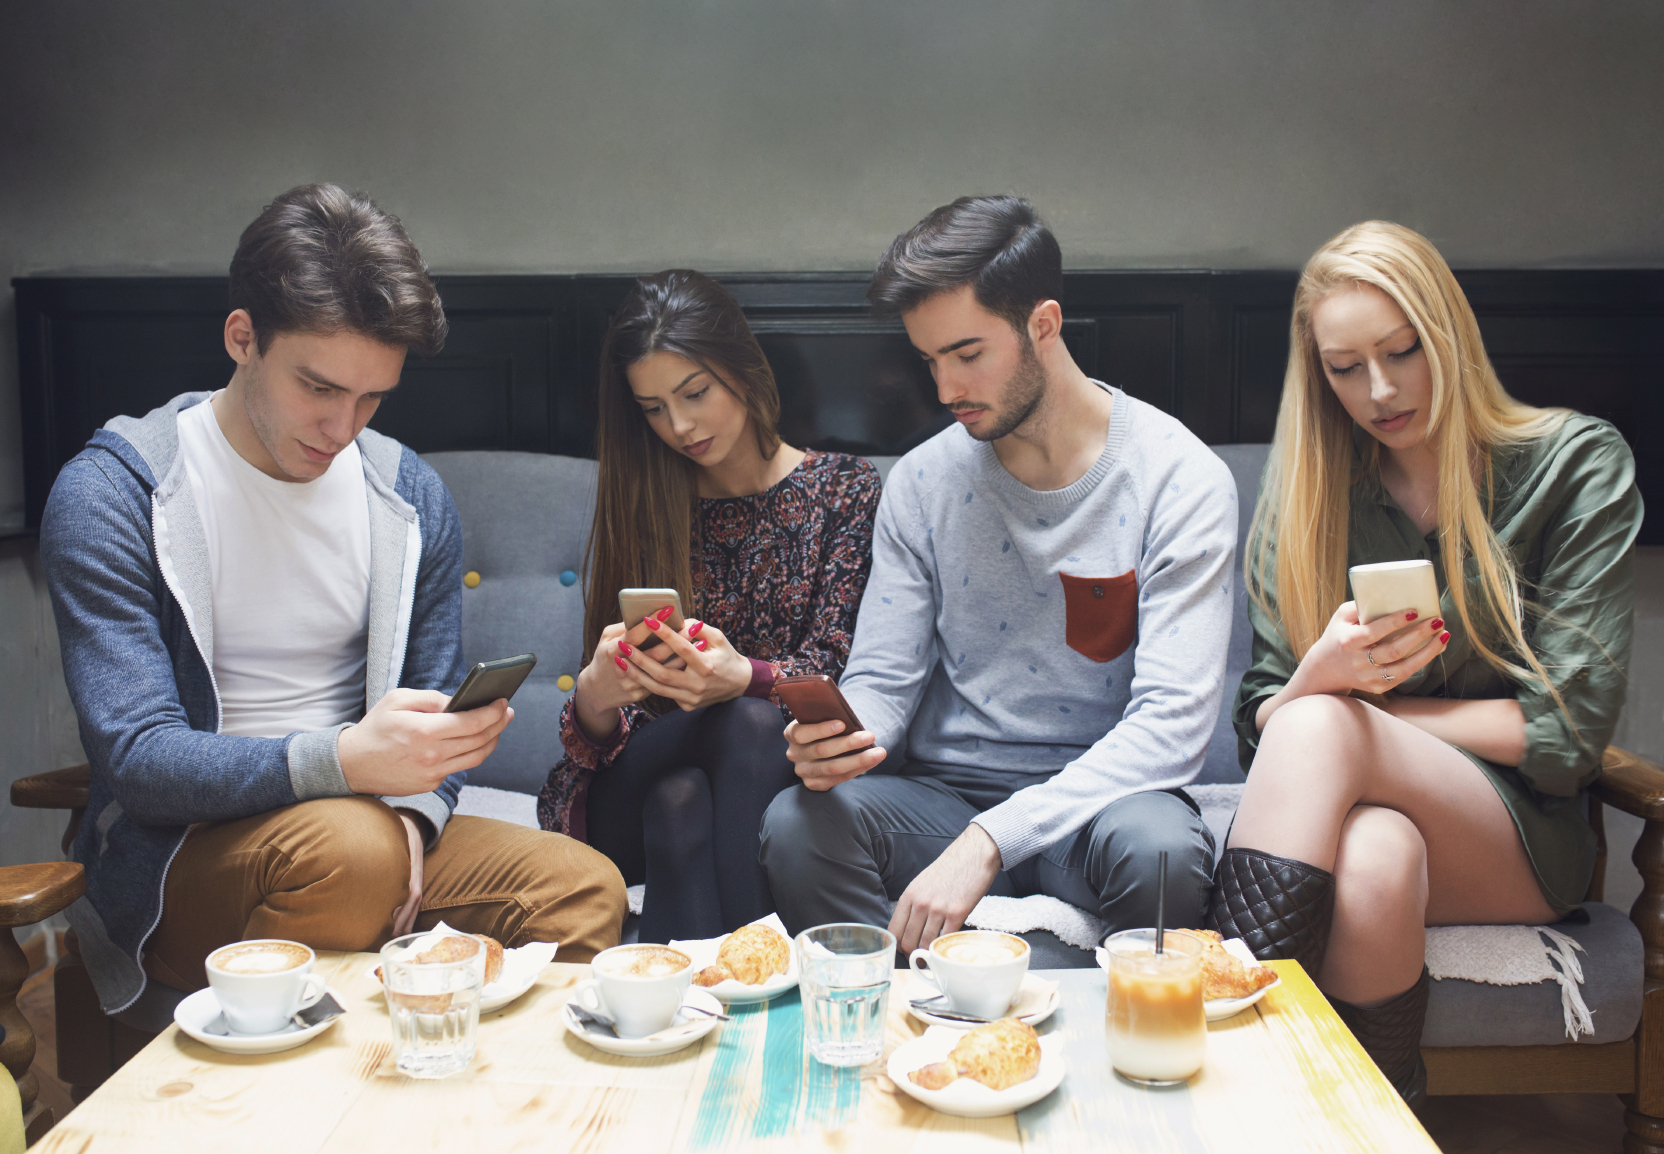 technology isolates people Researchers link use of internet, social isolation when they first reported an association between internet use and social isolation with single people.